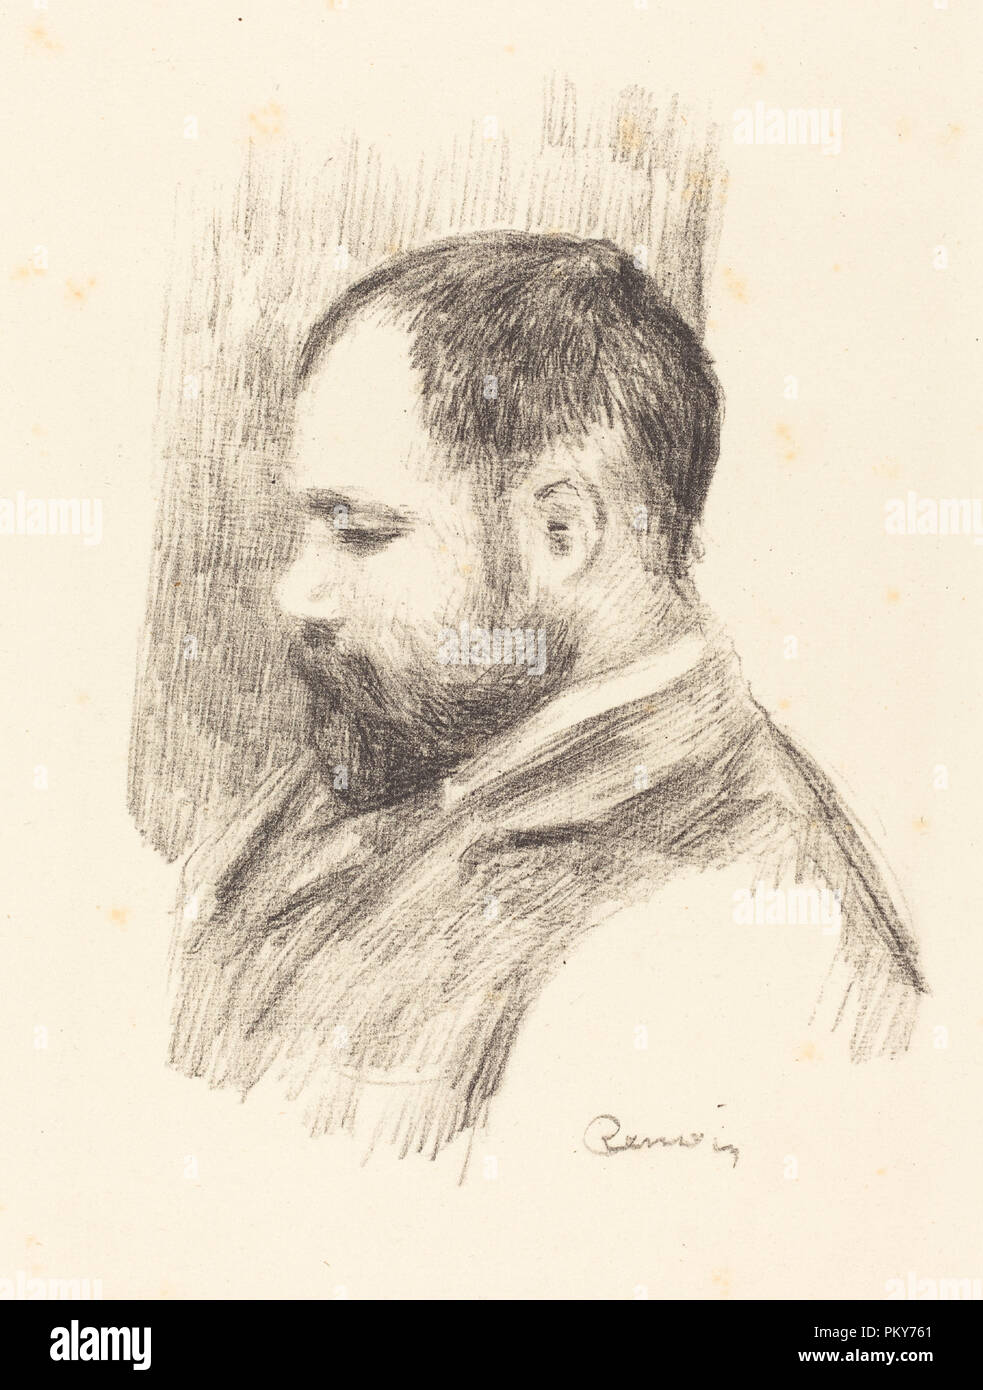 Ambroise Vollard. Dated: 1904. Medium: lithograph. Museum: National Gallery of Art, Washington DC. Author: AUGUSTE RENOIR. - Stock Image